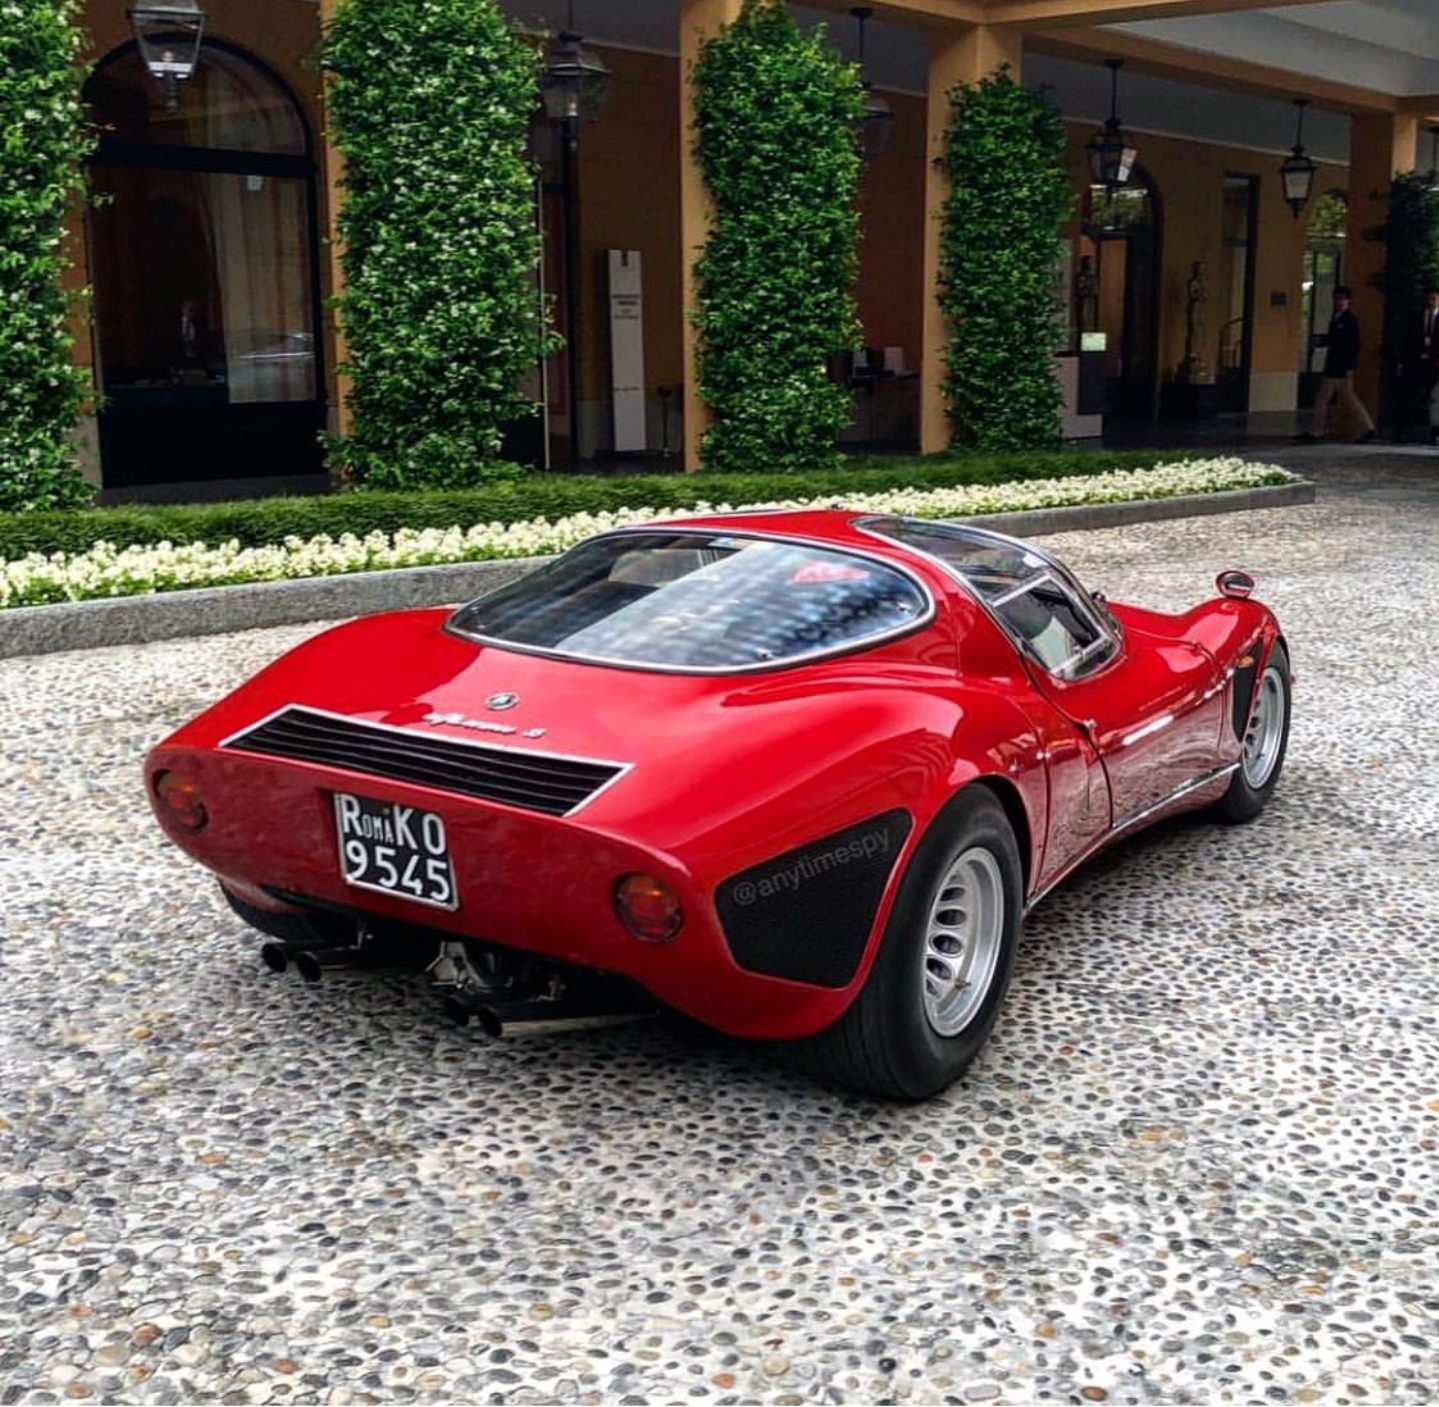 Alfa 33 Stradale by @anytimespy